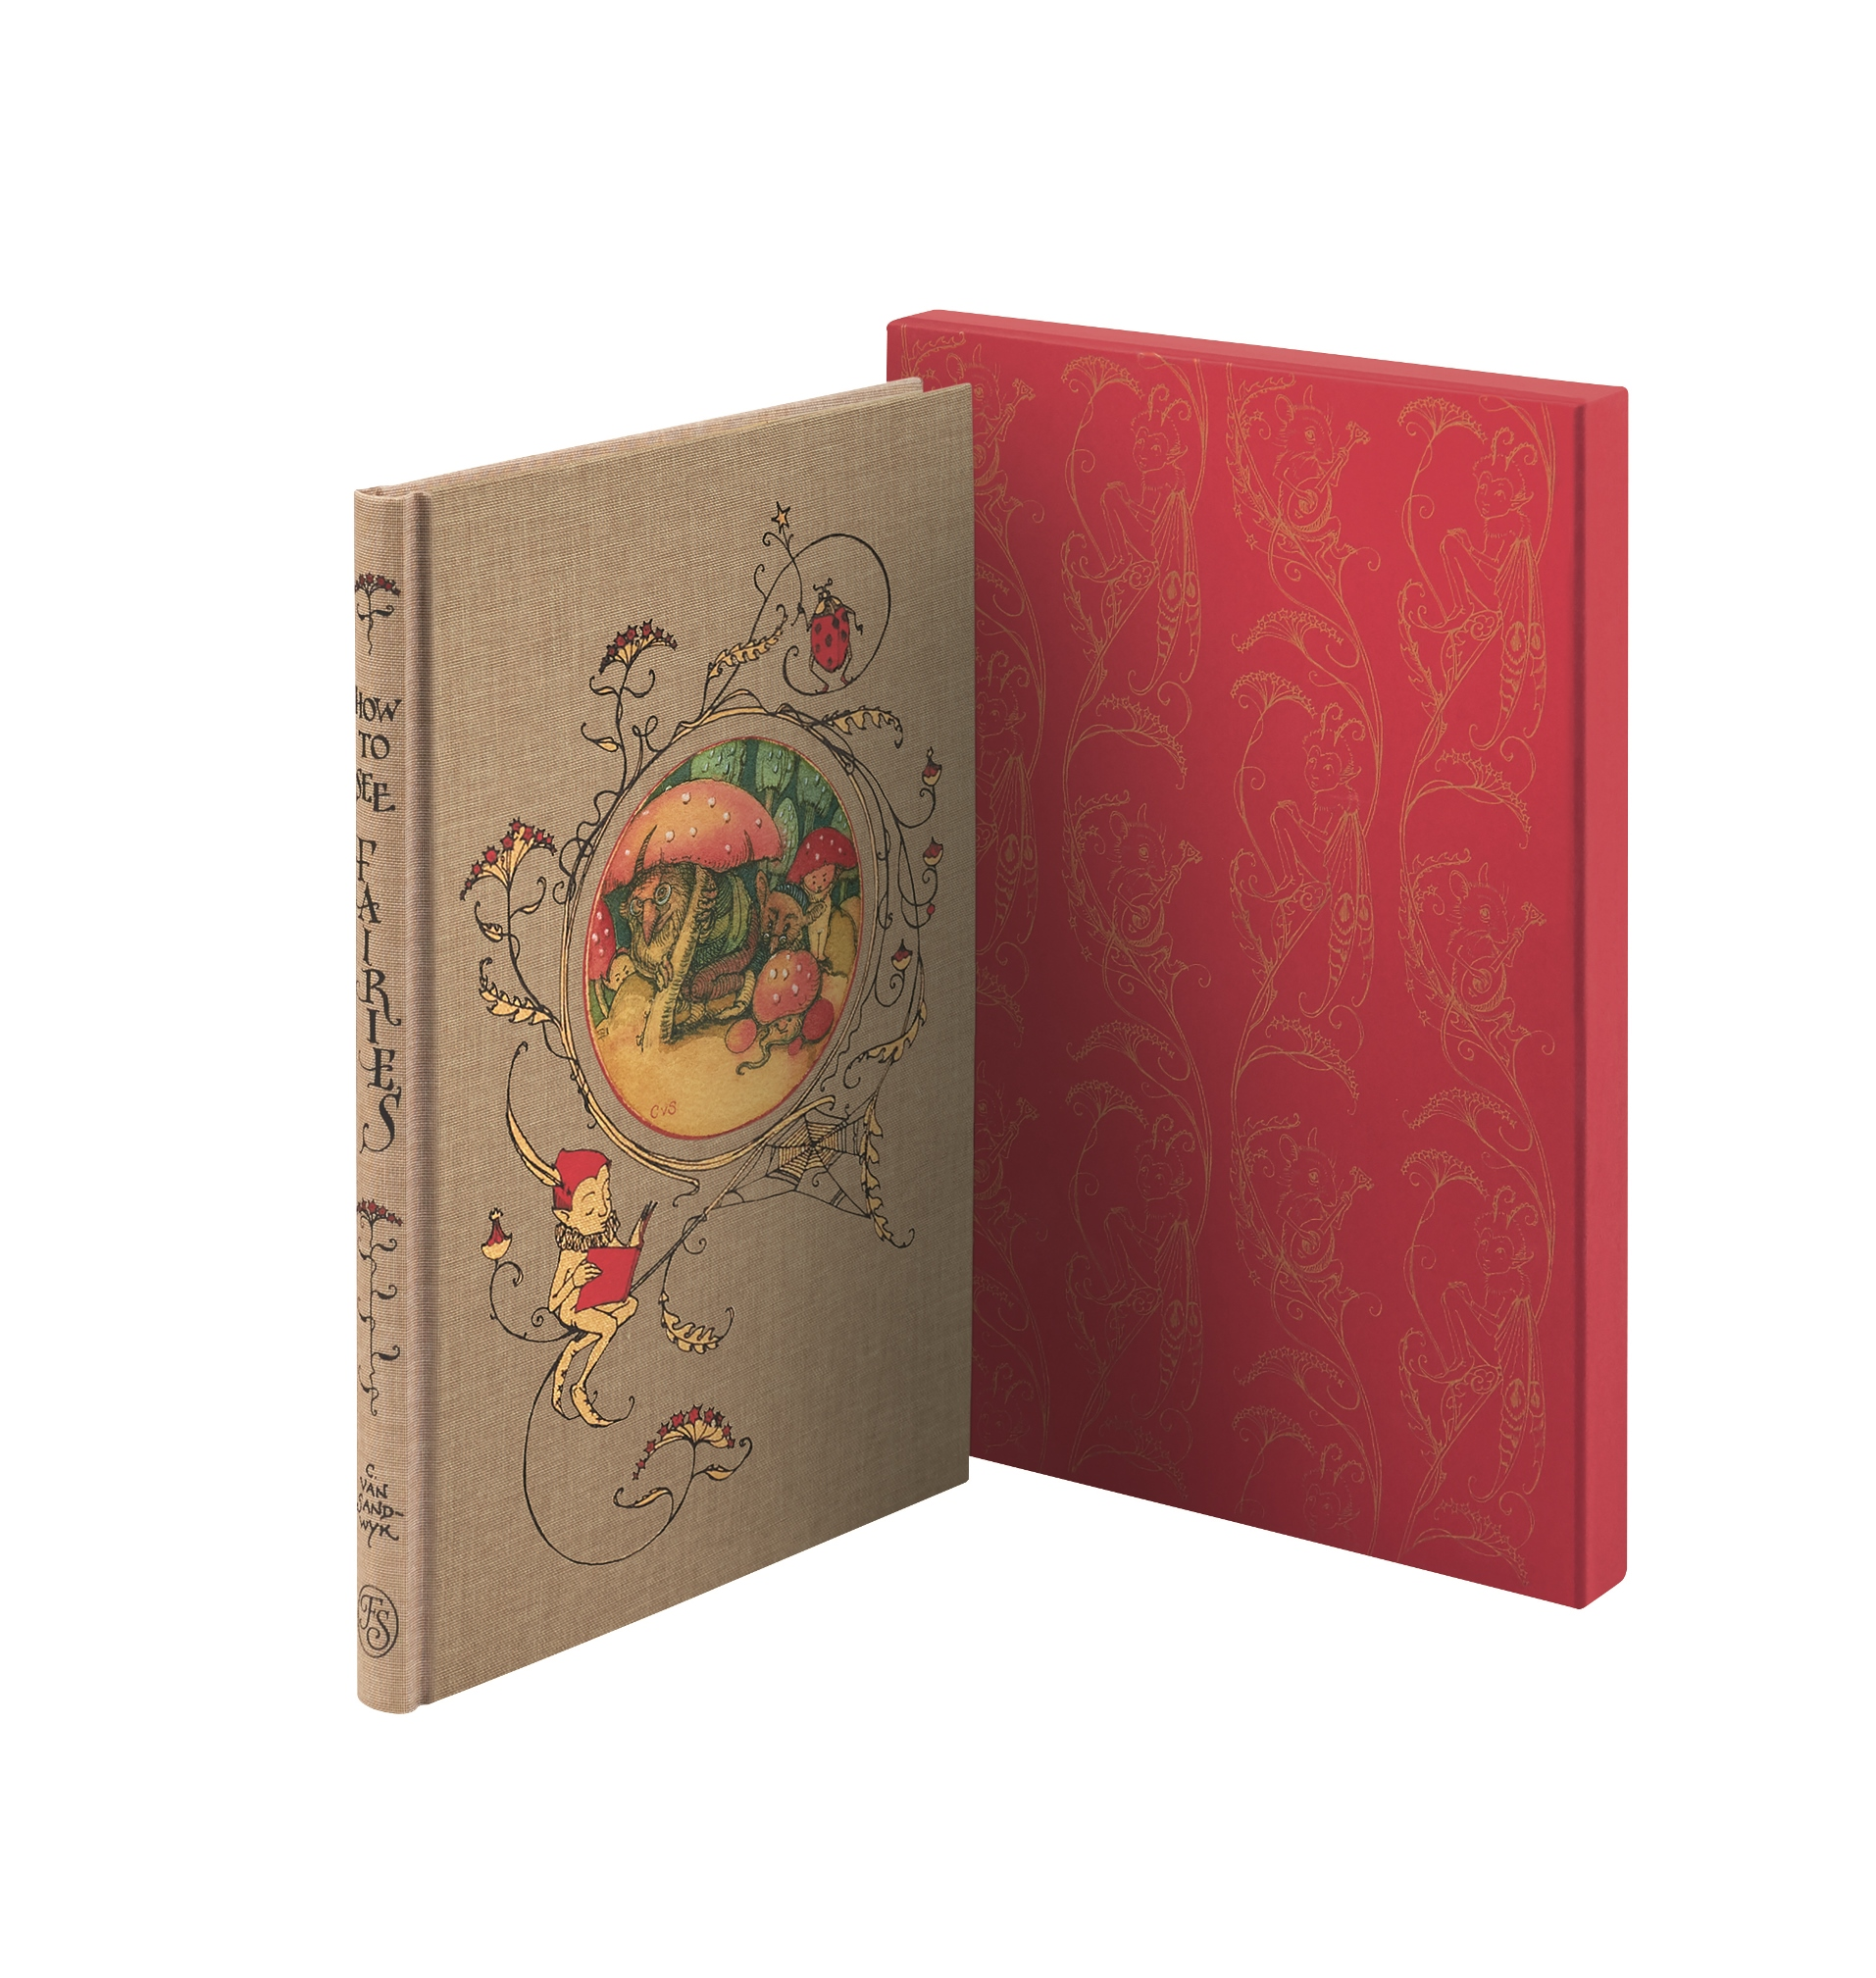 How To See Fairies cover and slipcase